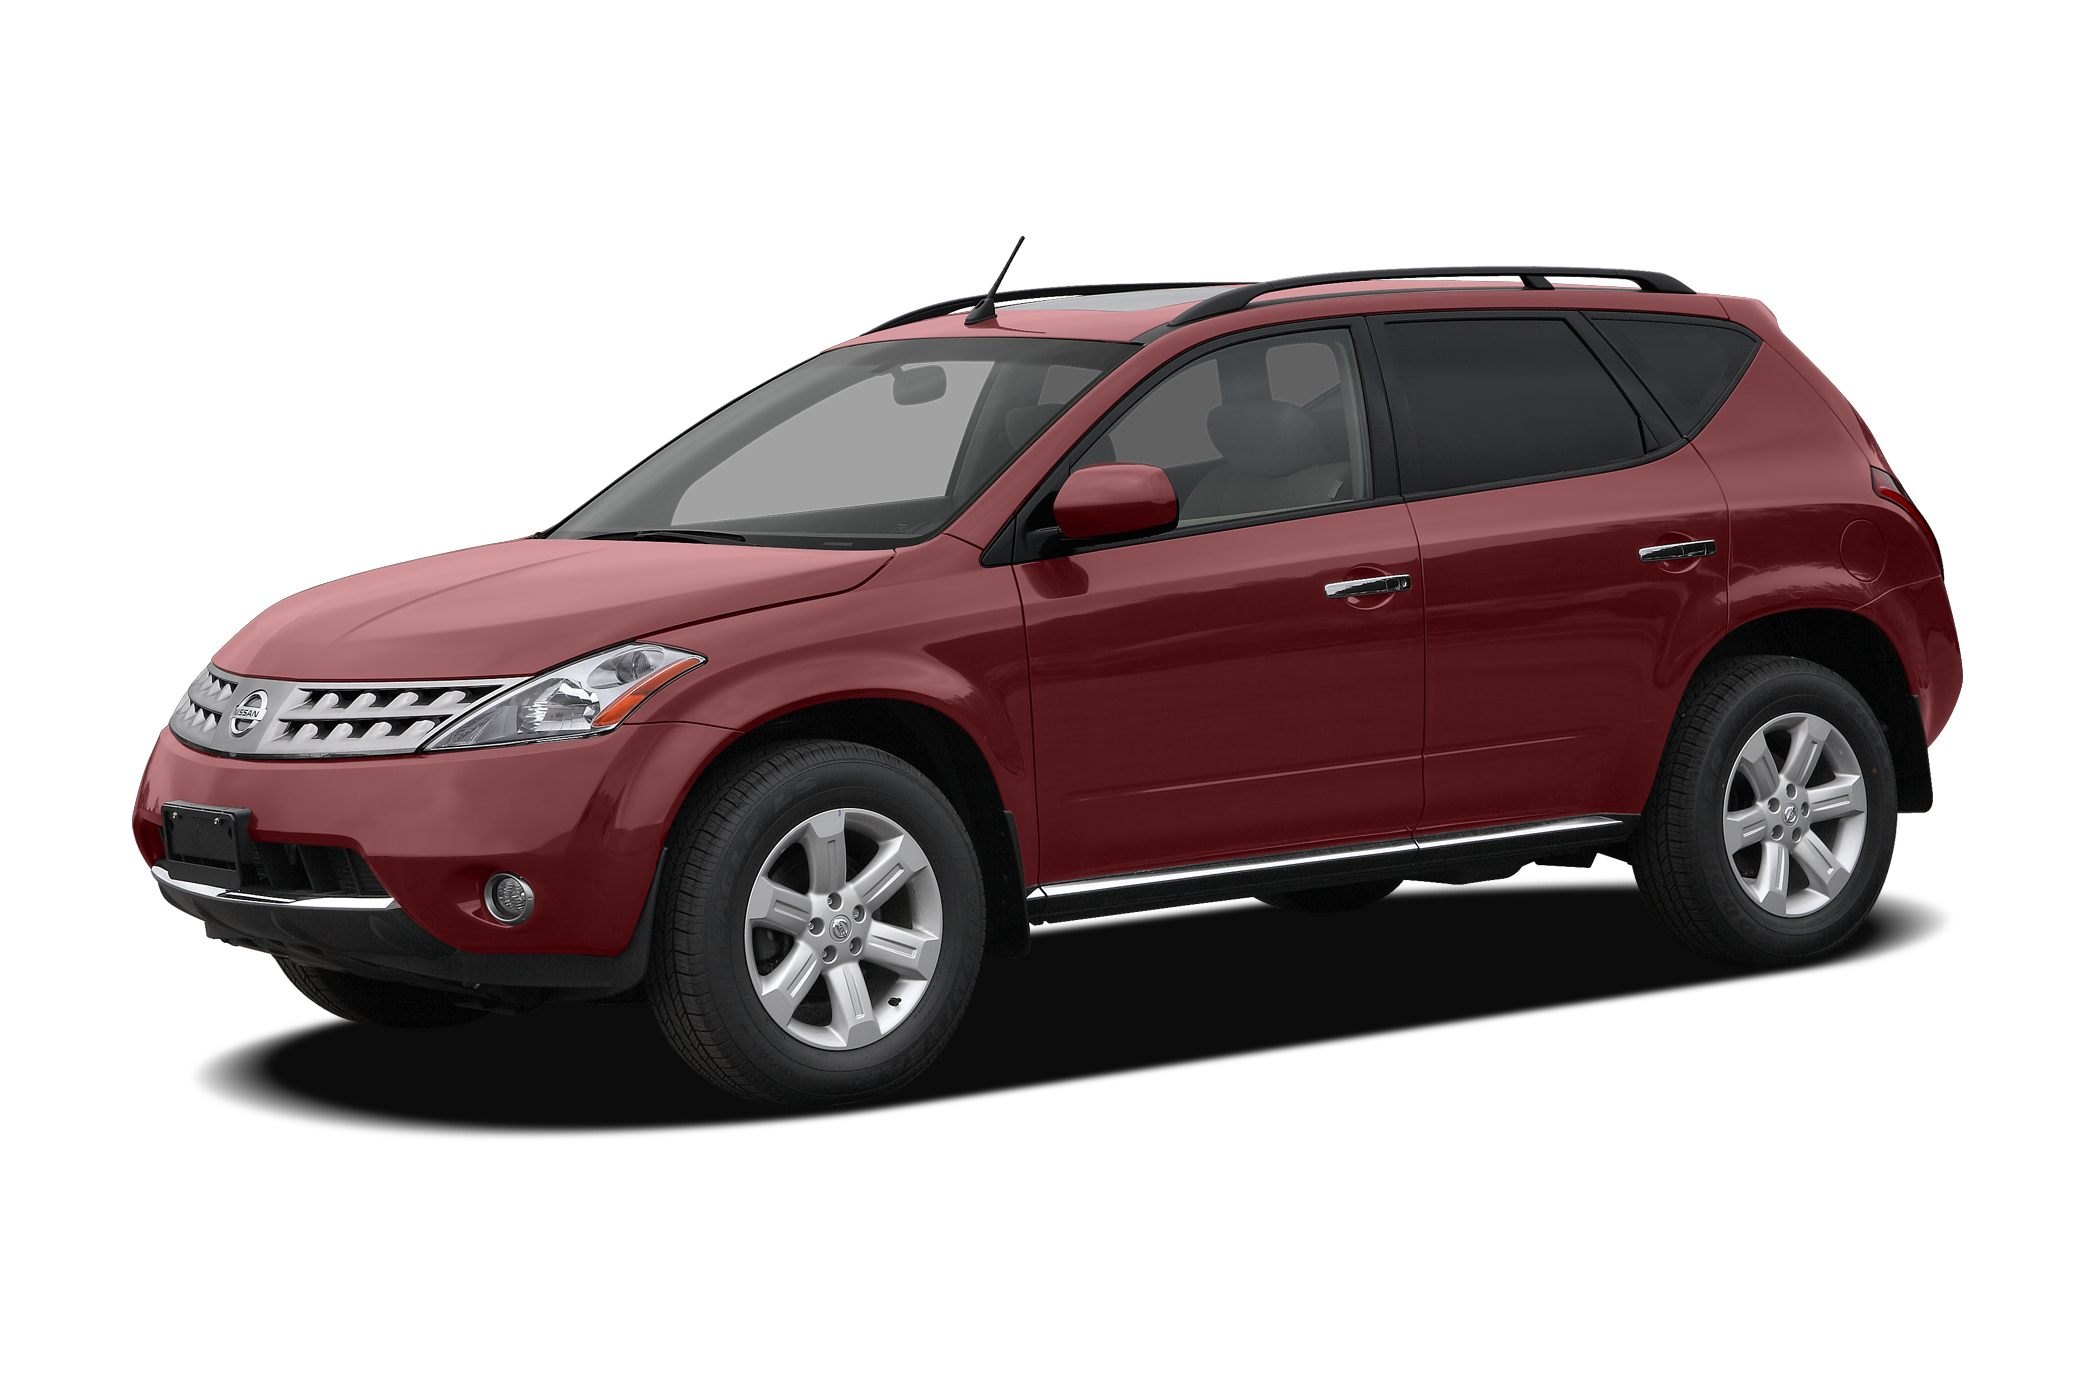 2007 Nissan Murano  Miles 126045Color Red Stock P0931A VIN JN8AZ08W27W643920